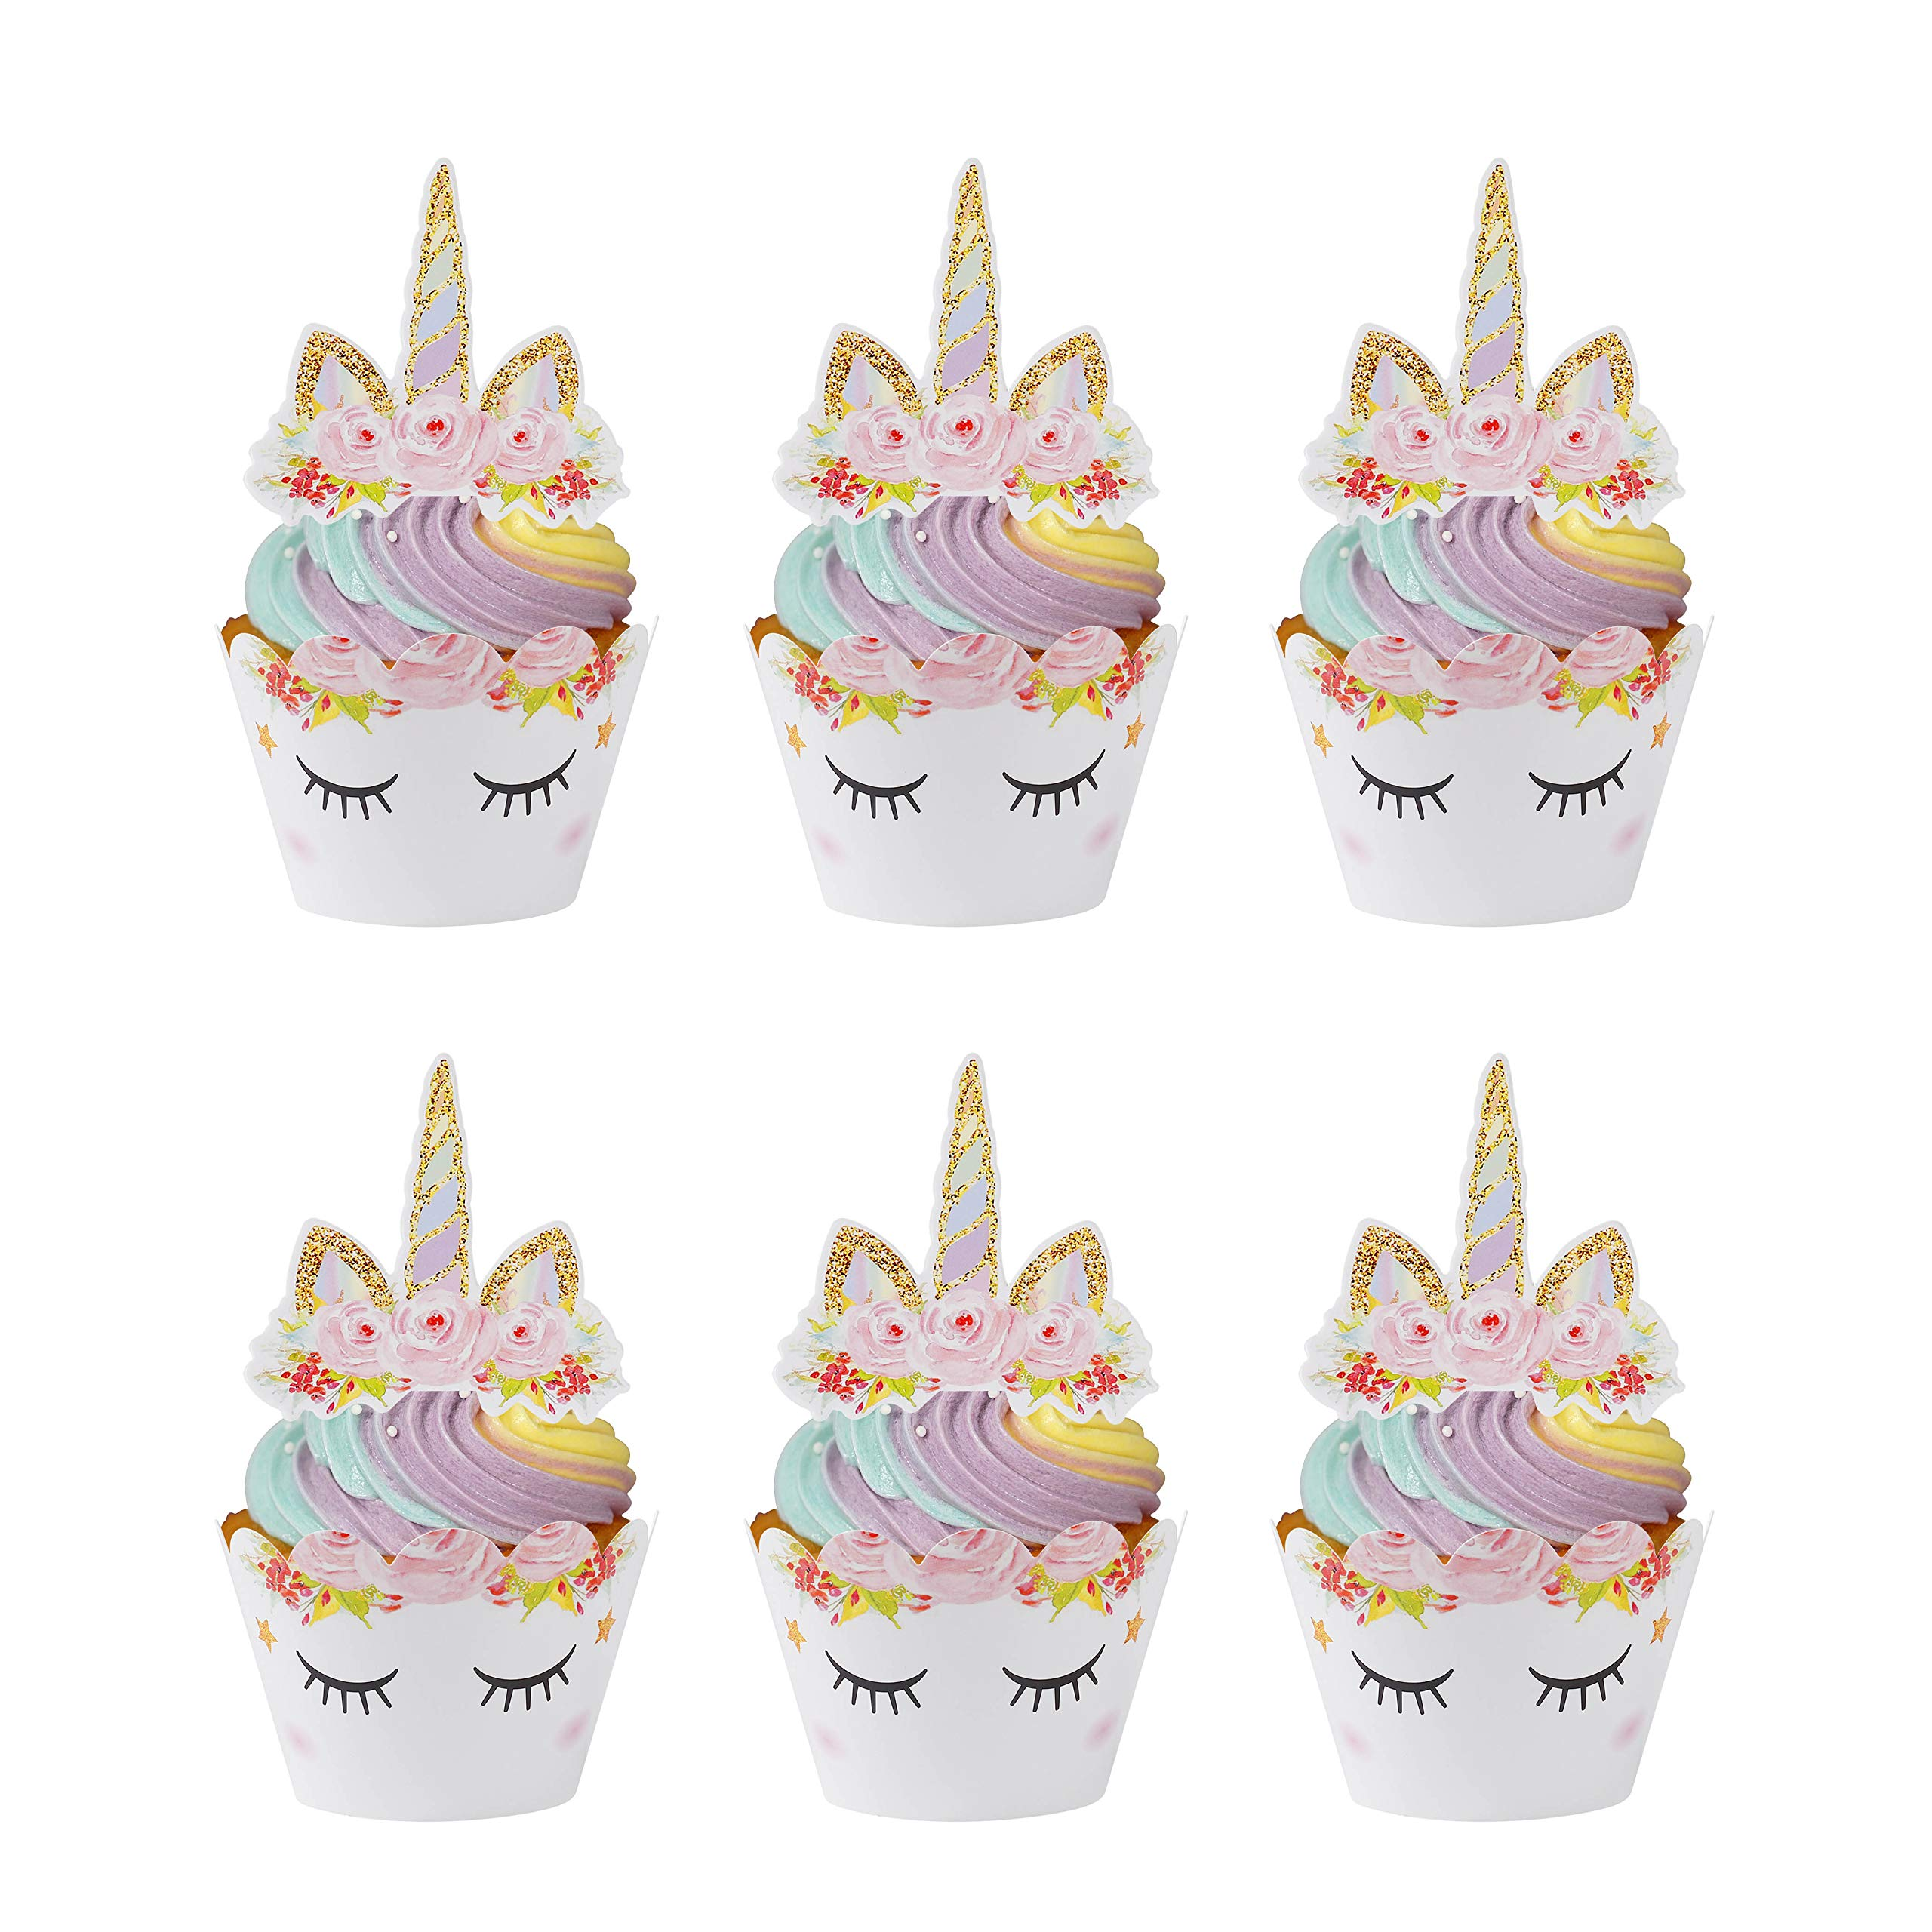 MengH-SHOP Cupcake Toppers Eyelash Cupcake Wrappers Unicorn Cupcake Wraps Liner Baking Cup for Kids Girls Birthday Themed Party Baby Shower 24 Sets